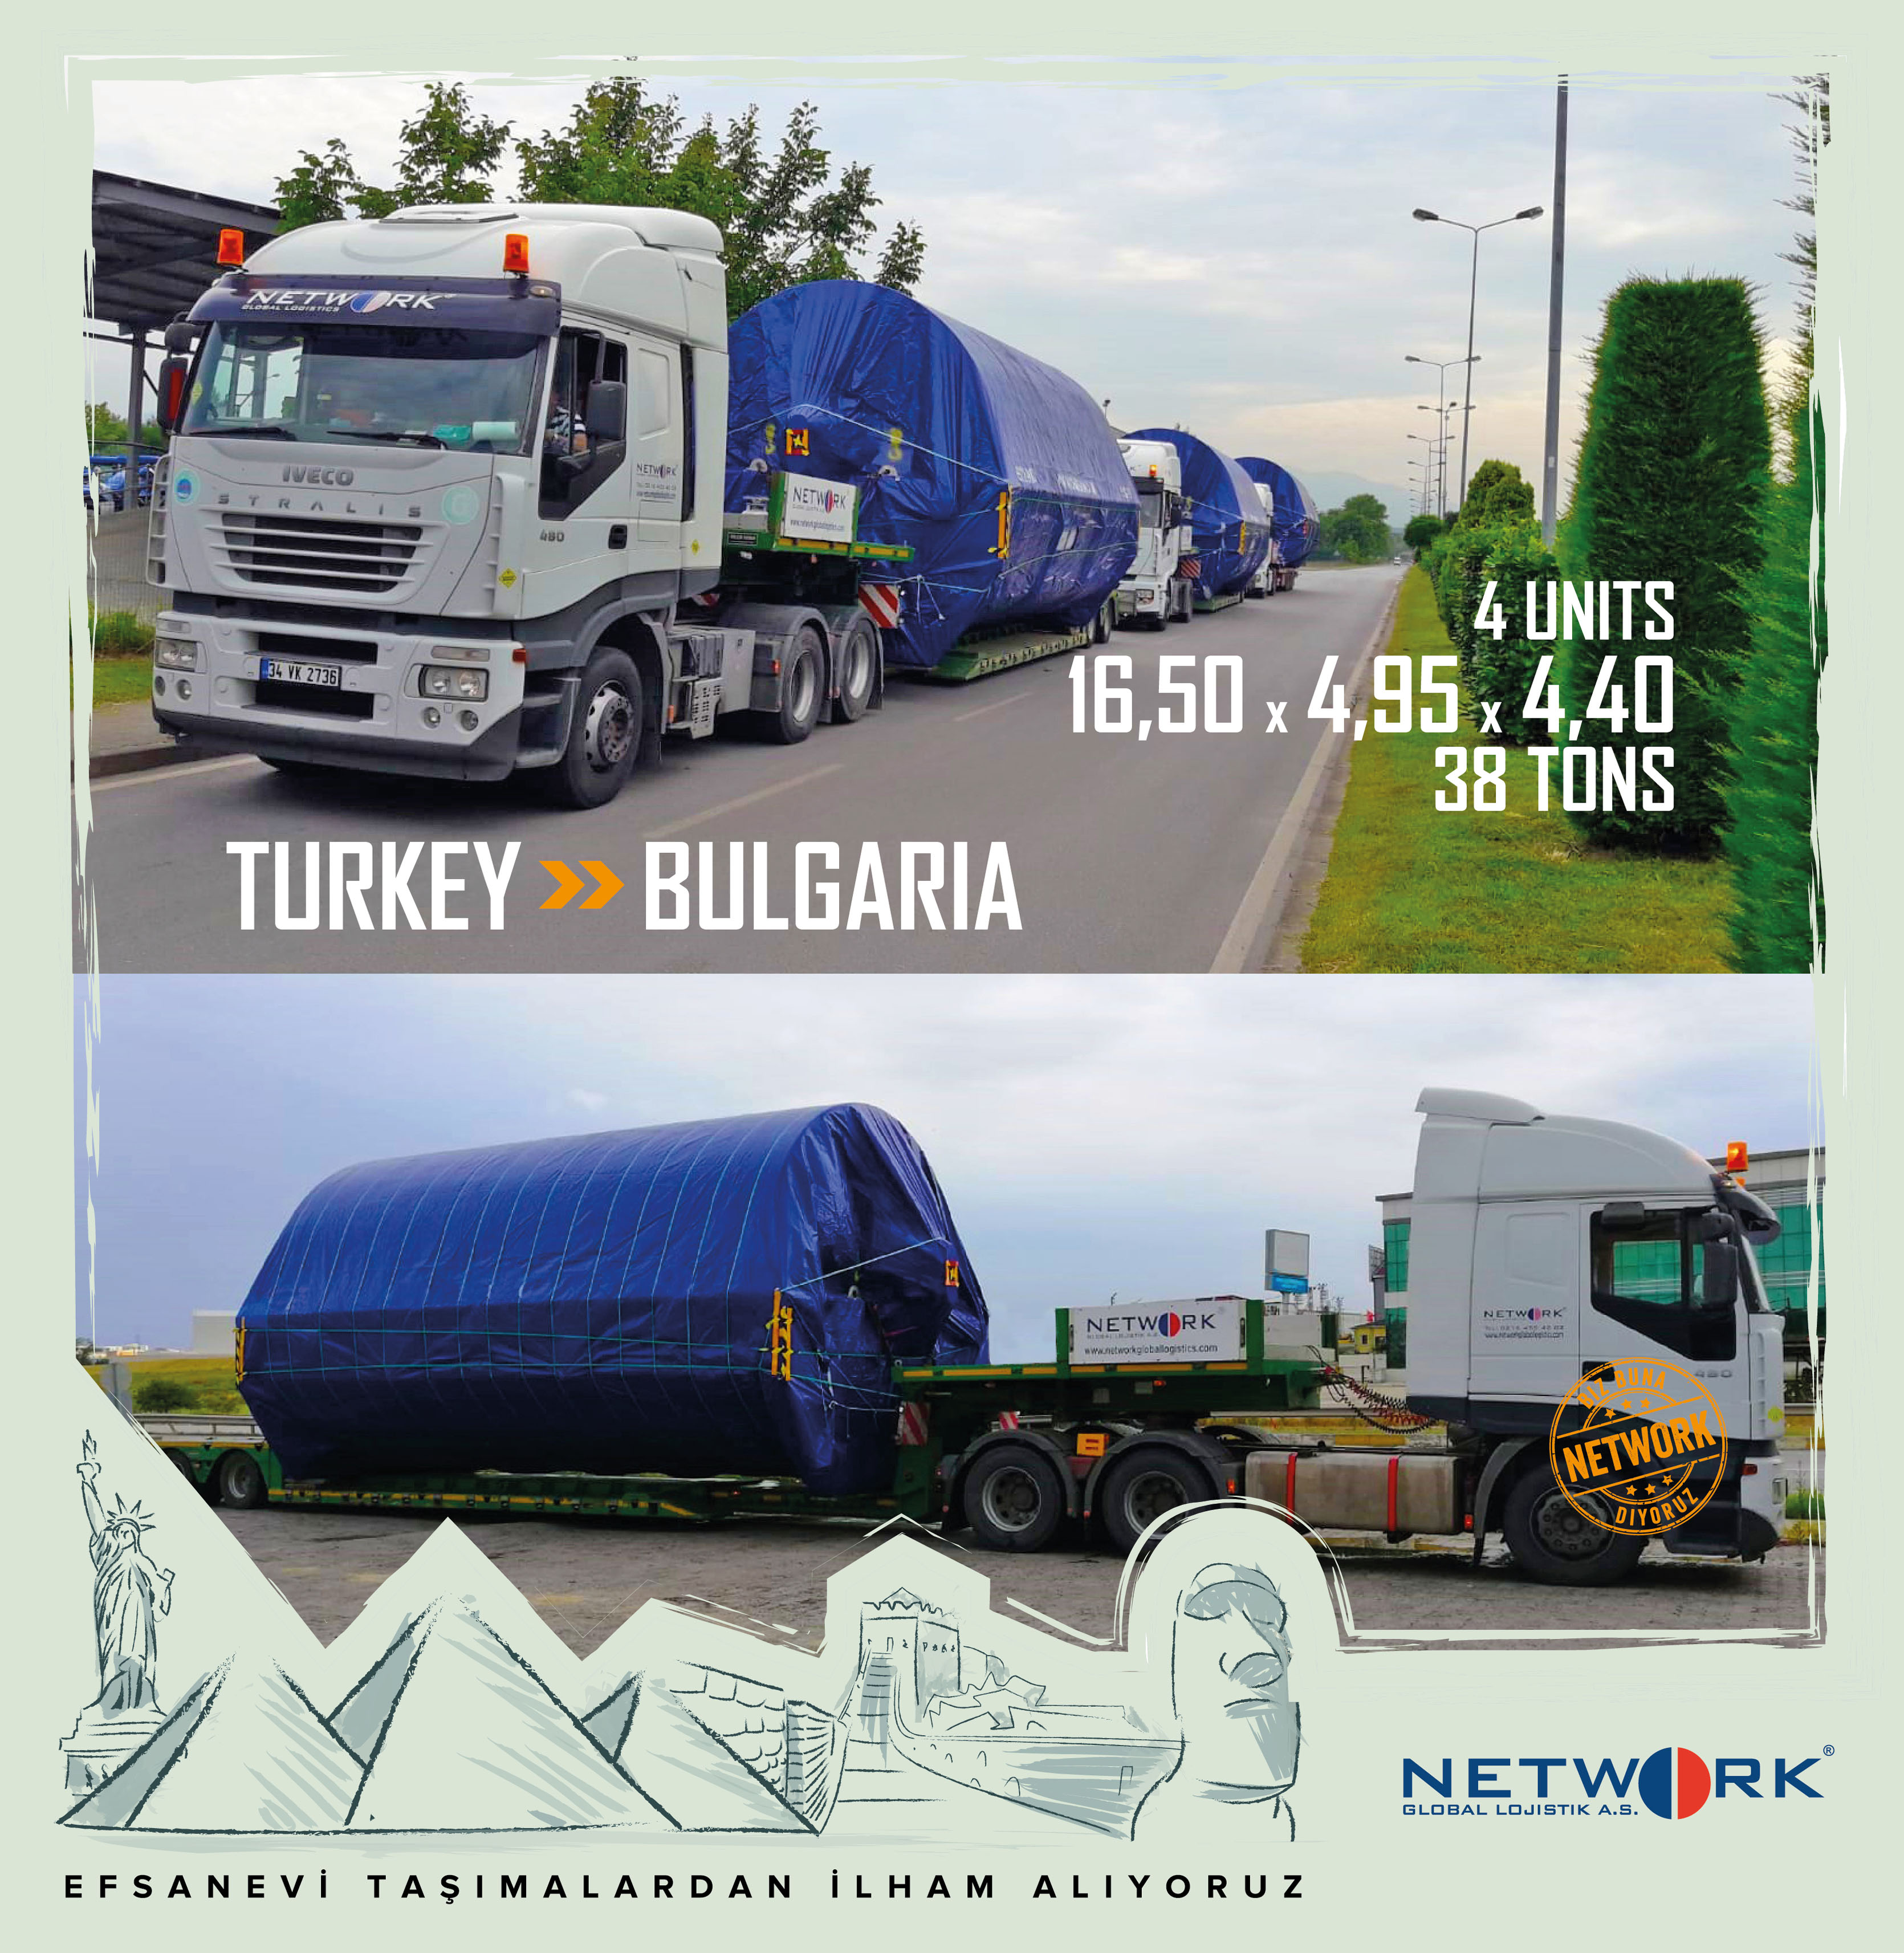 networkgloballogistics